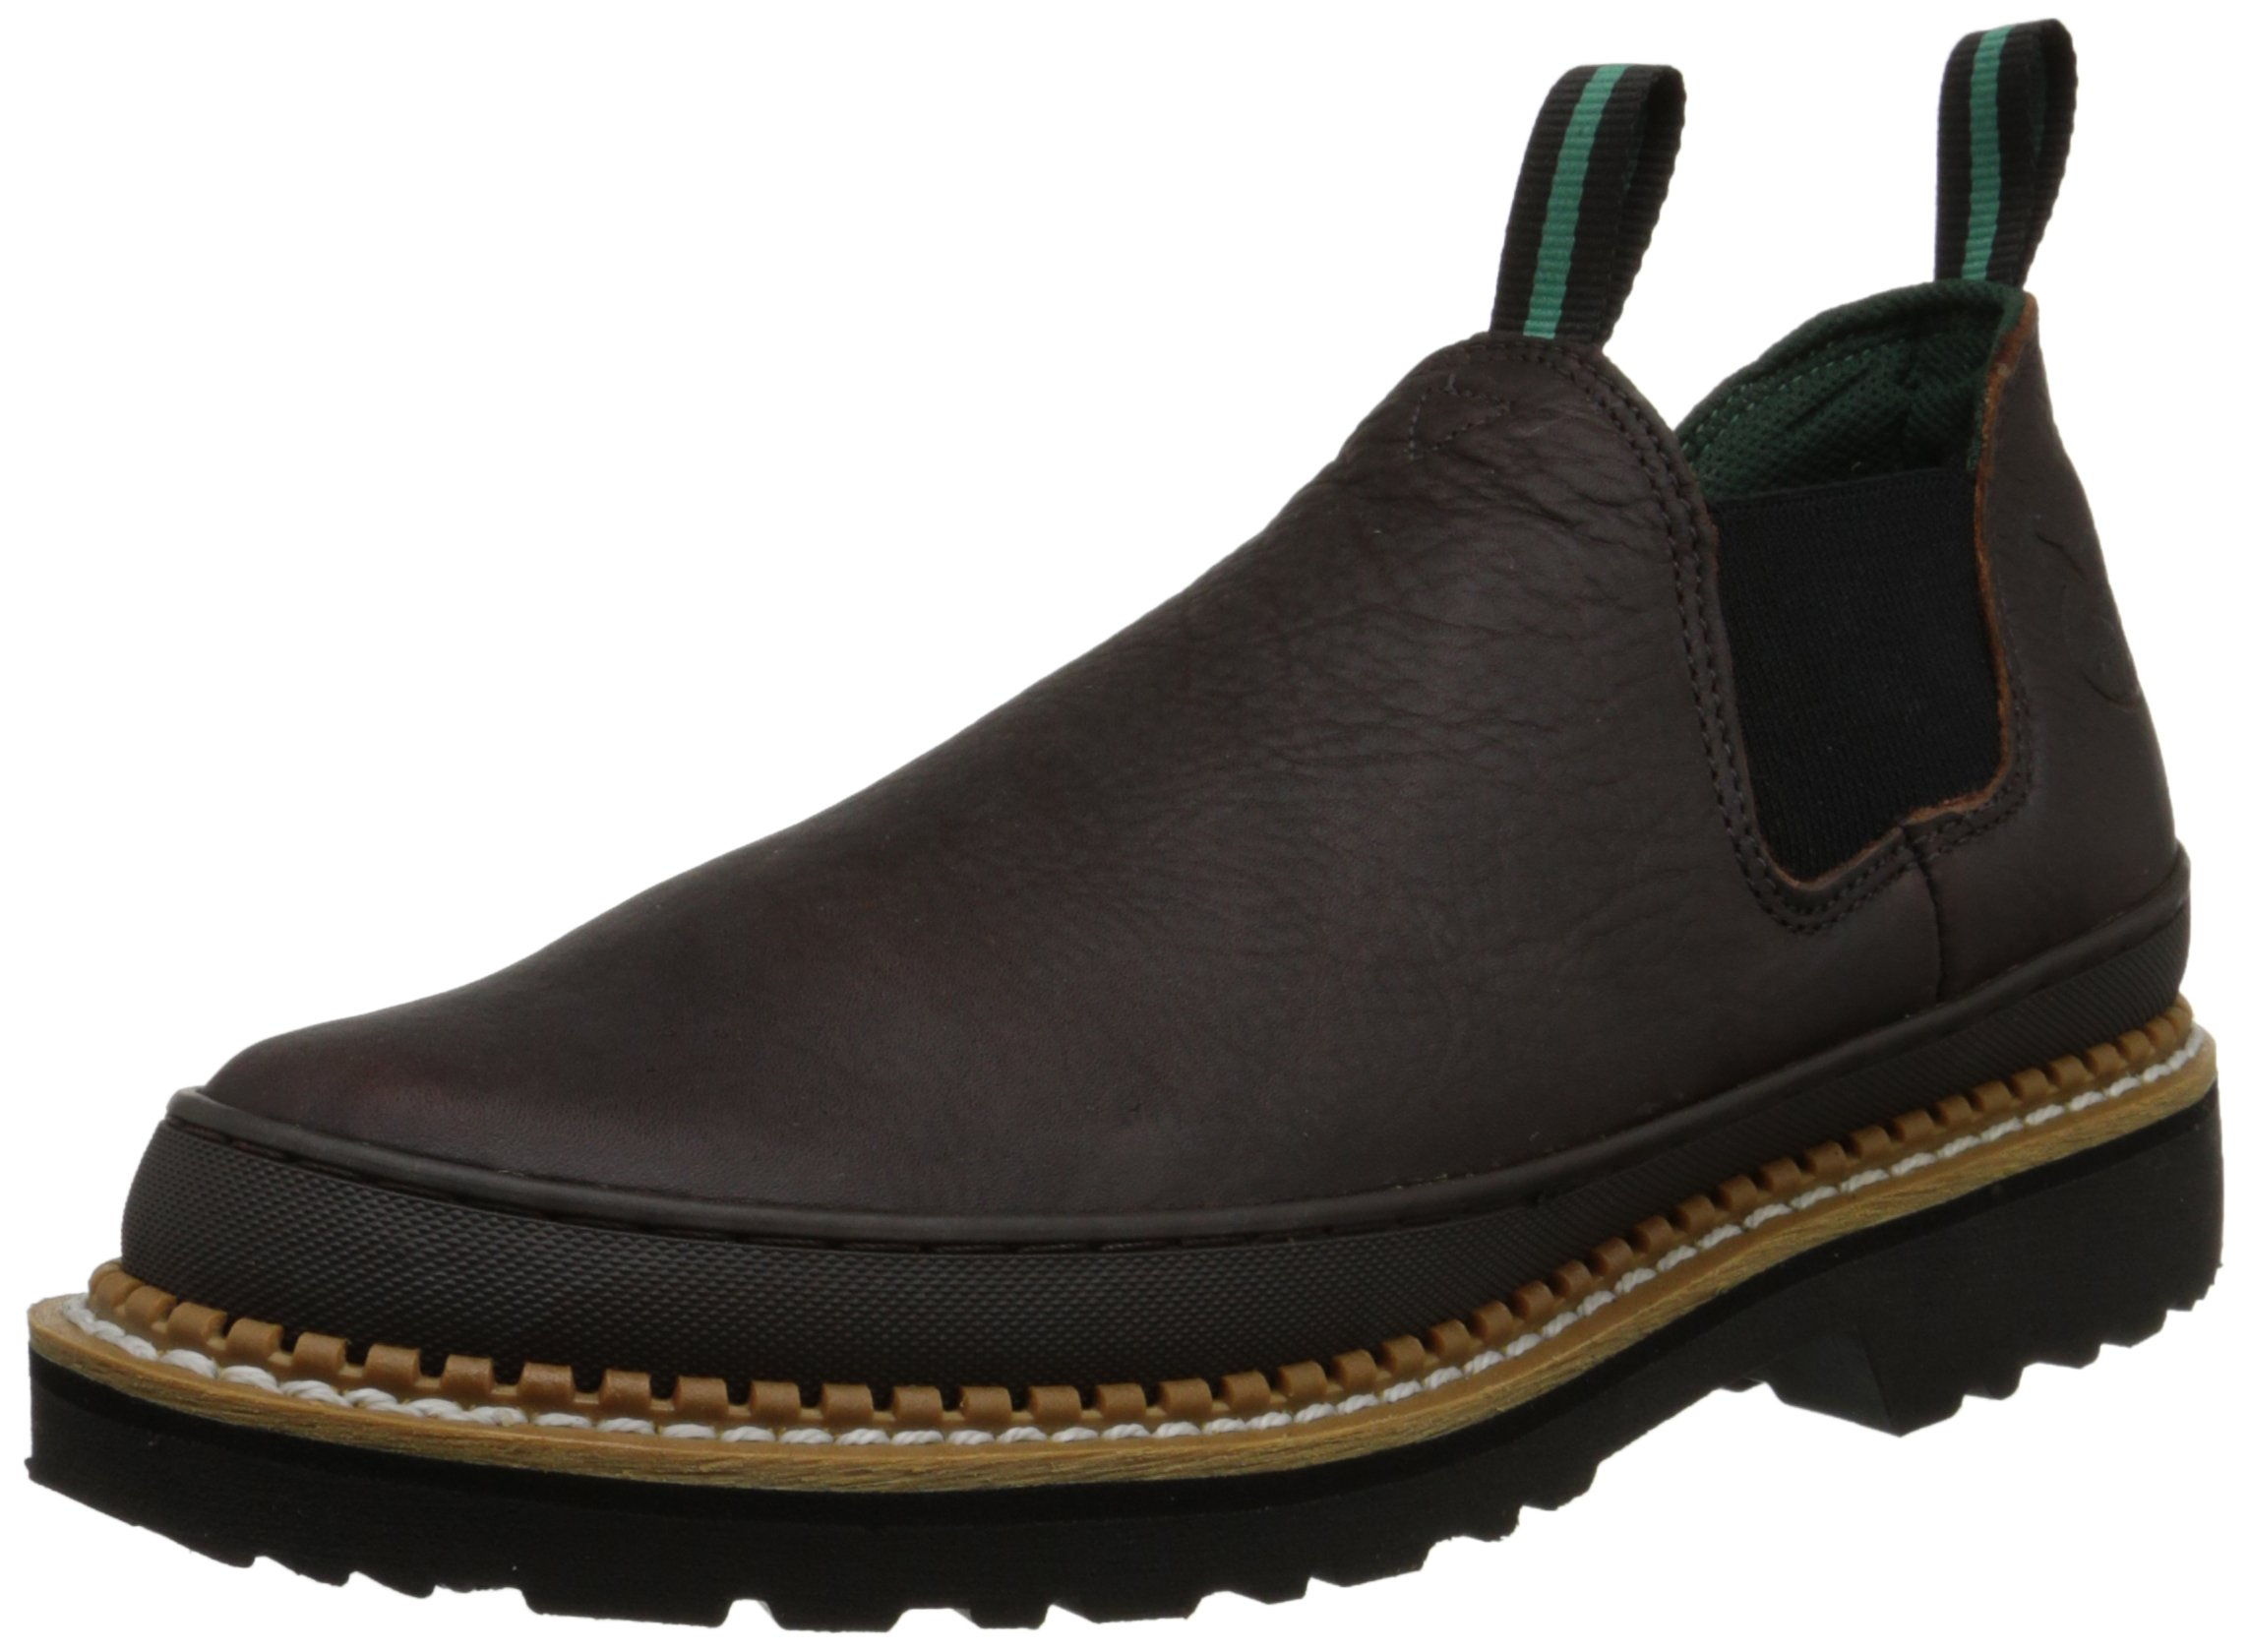 Georgia Giant Men's Romeo Slip-On Work Shoe,Brown,8.5 M by Georgia